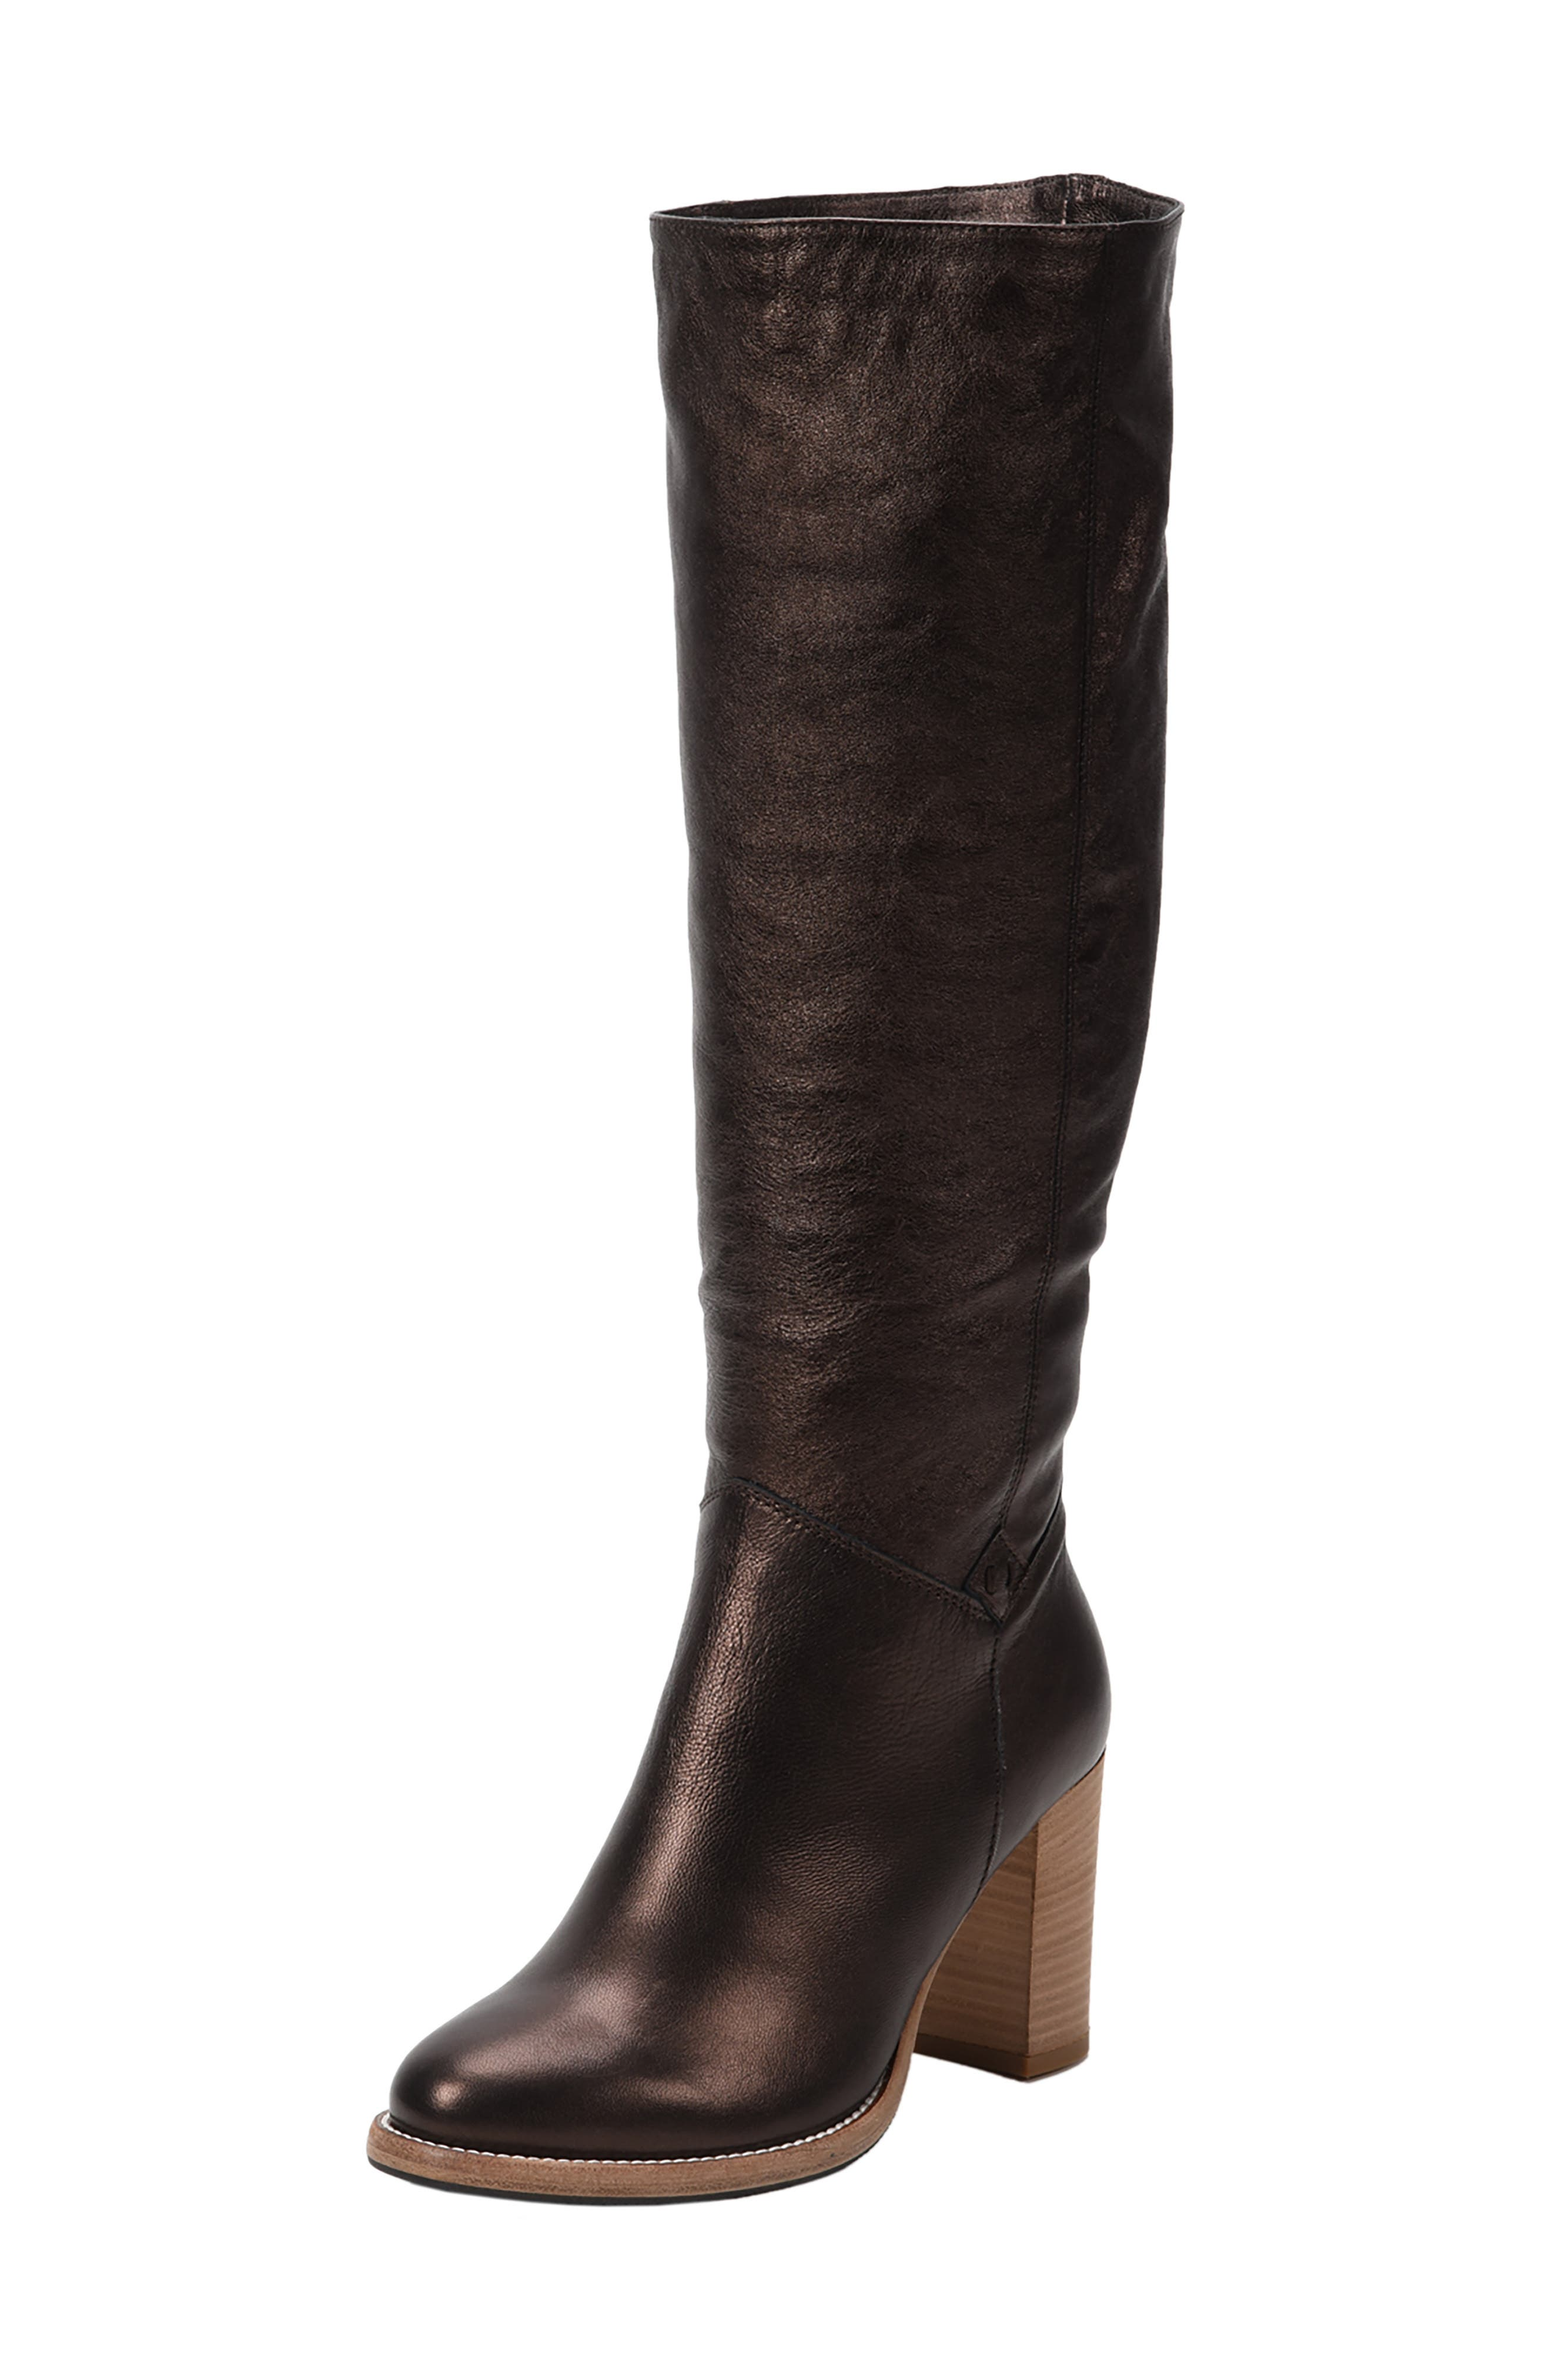 Ross & Snow Michela Sp Waterproof Genuine Shearling Lined Boot, Brown